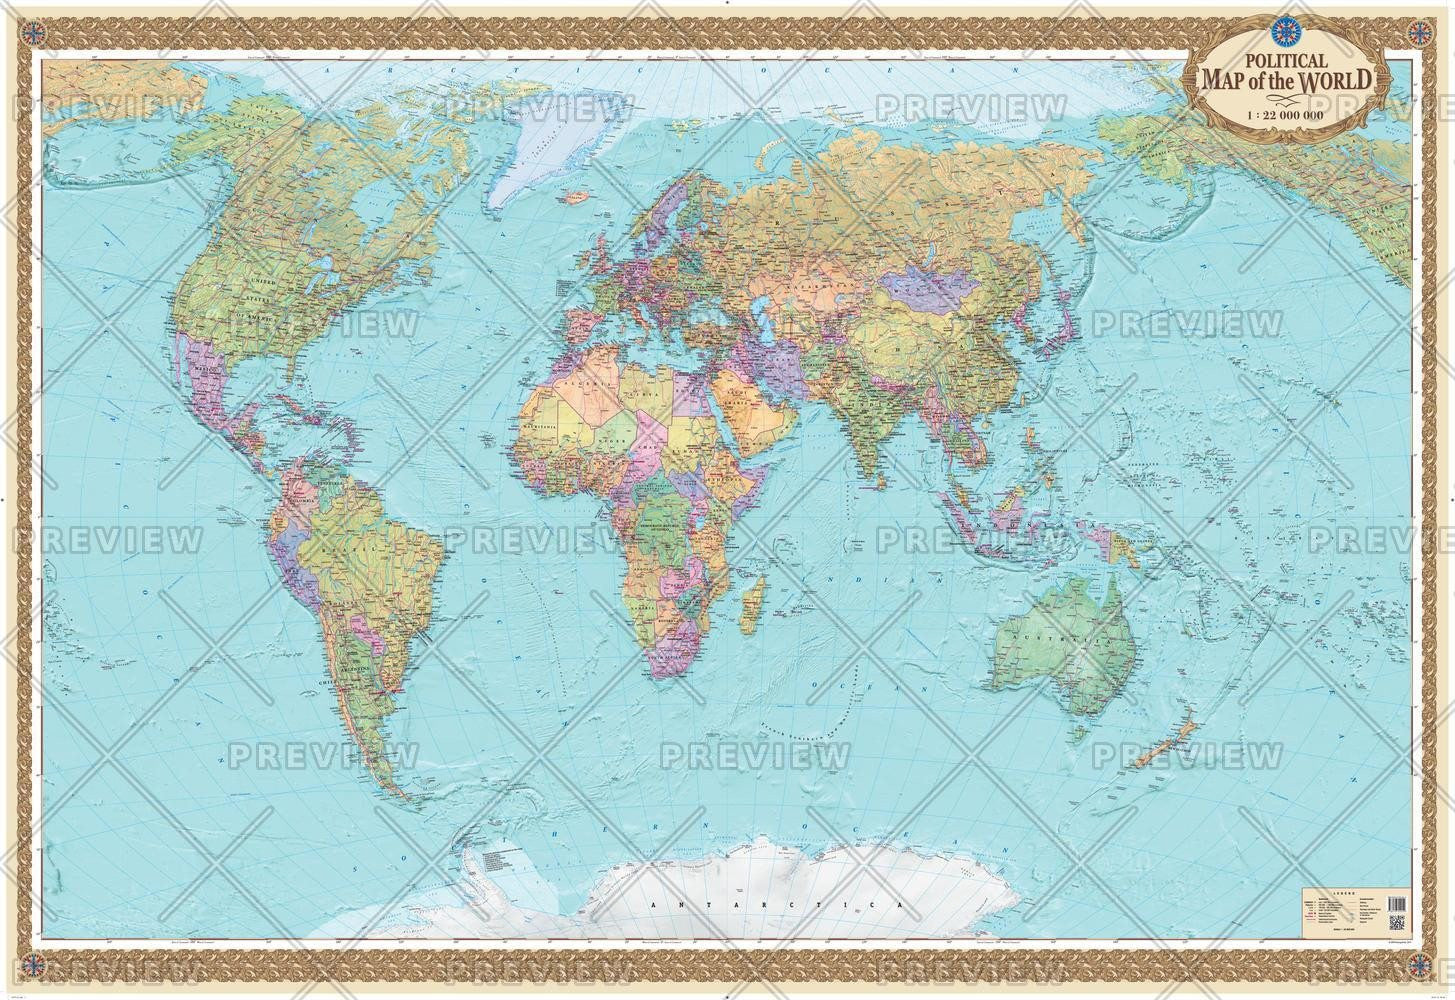 English Map Of The World.Political Map Of The World English